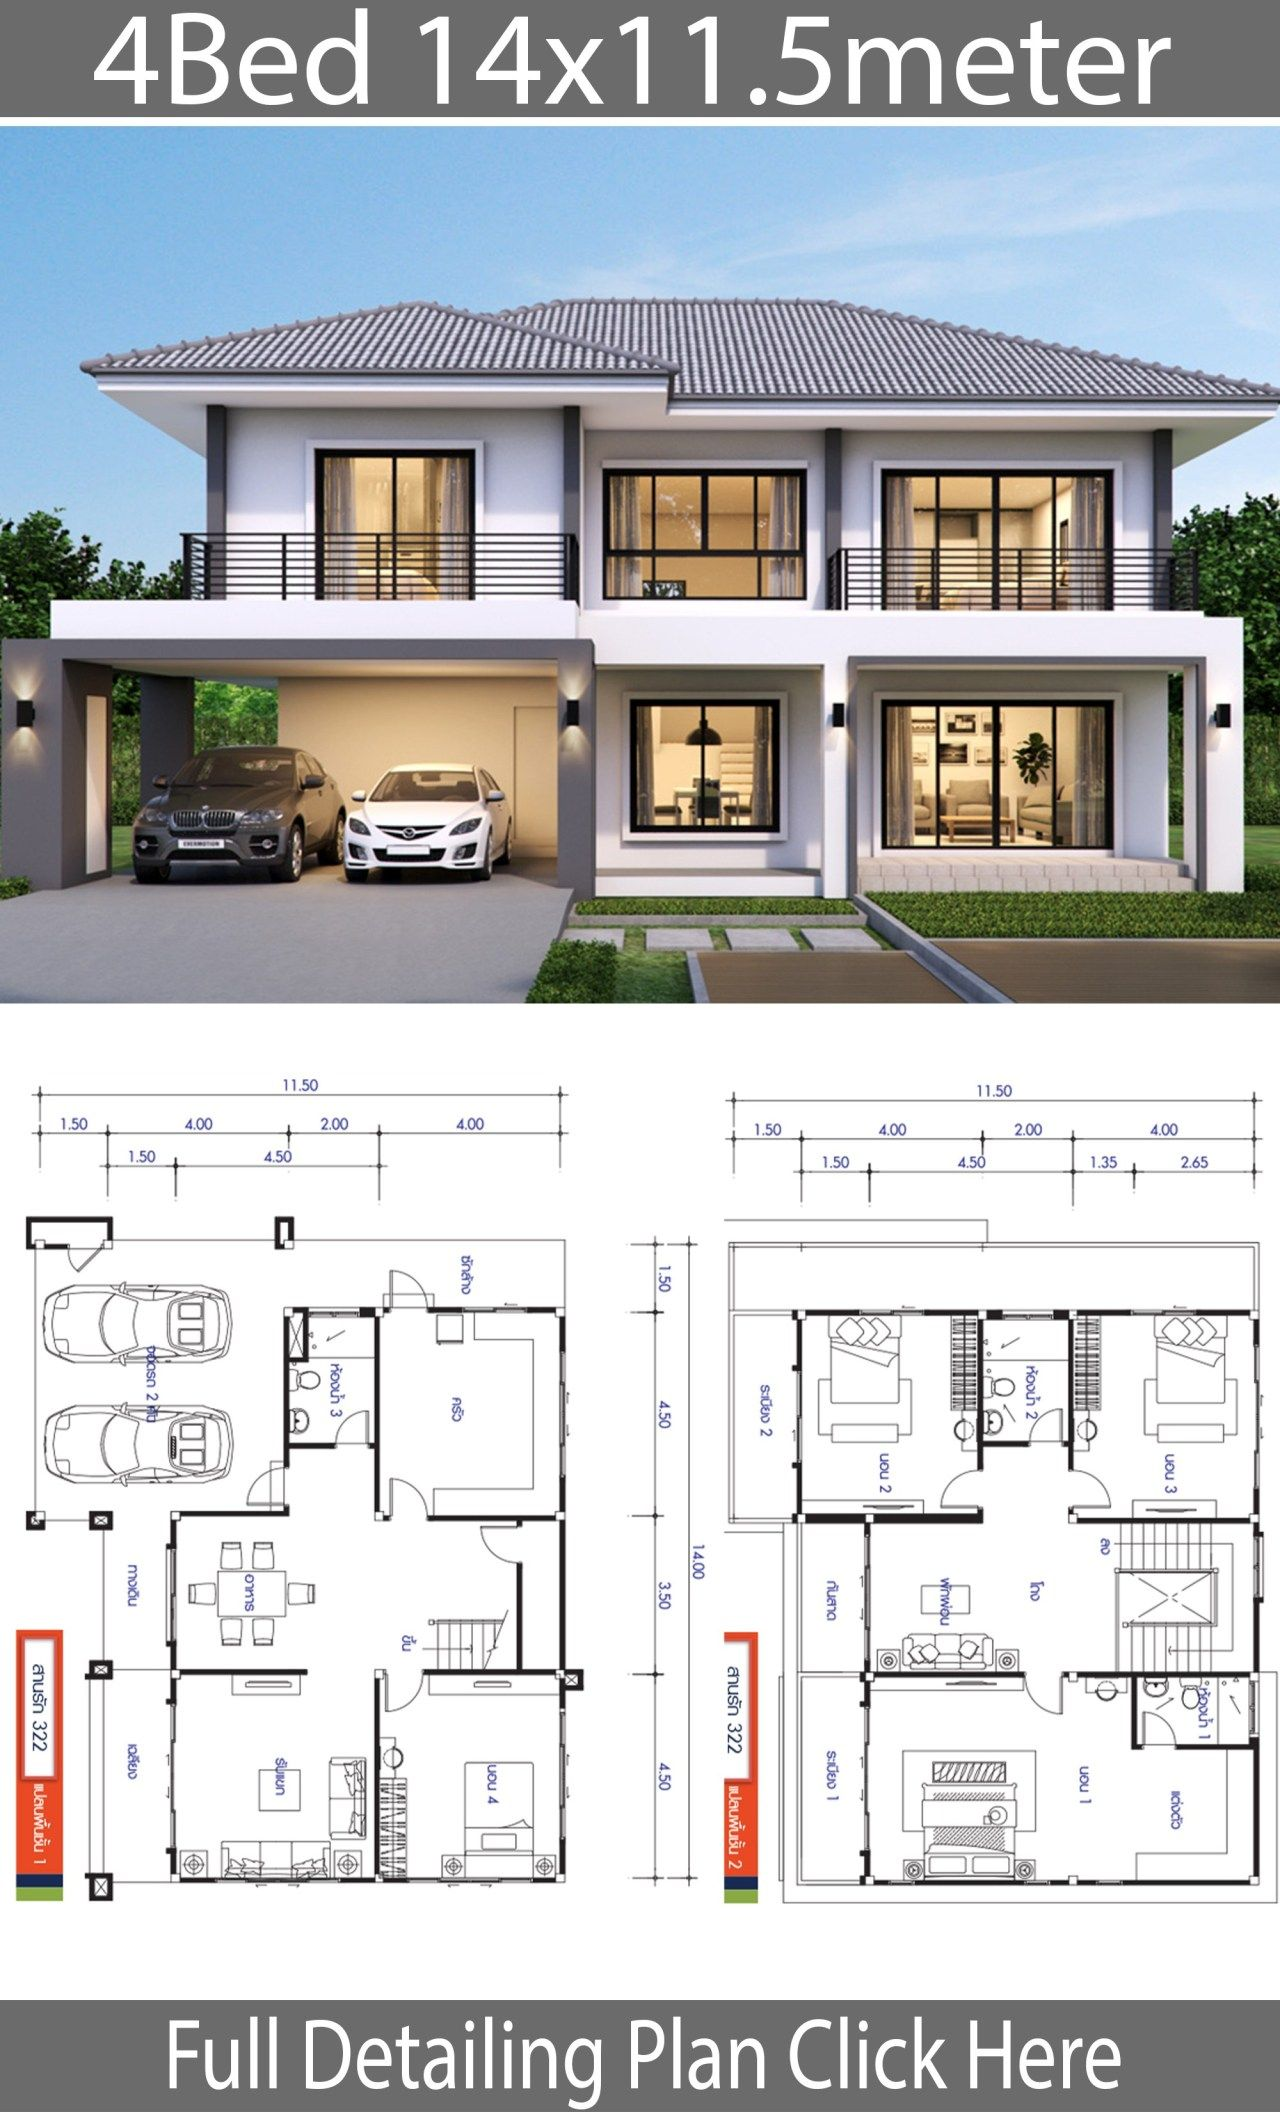 House Design Plan 14x11 5m With 4 Bedrooms Home Ideas House Designs Exterior Bedroom House Plans Architectural House Plans